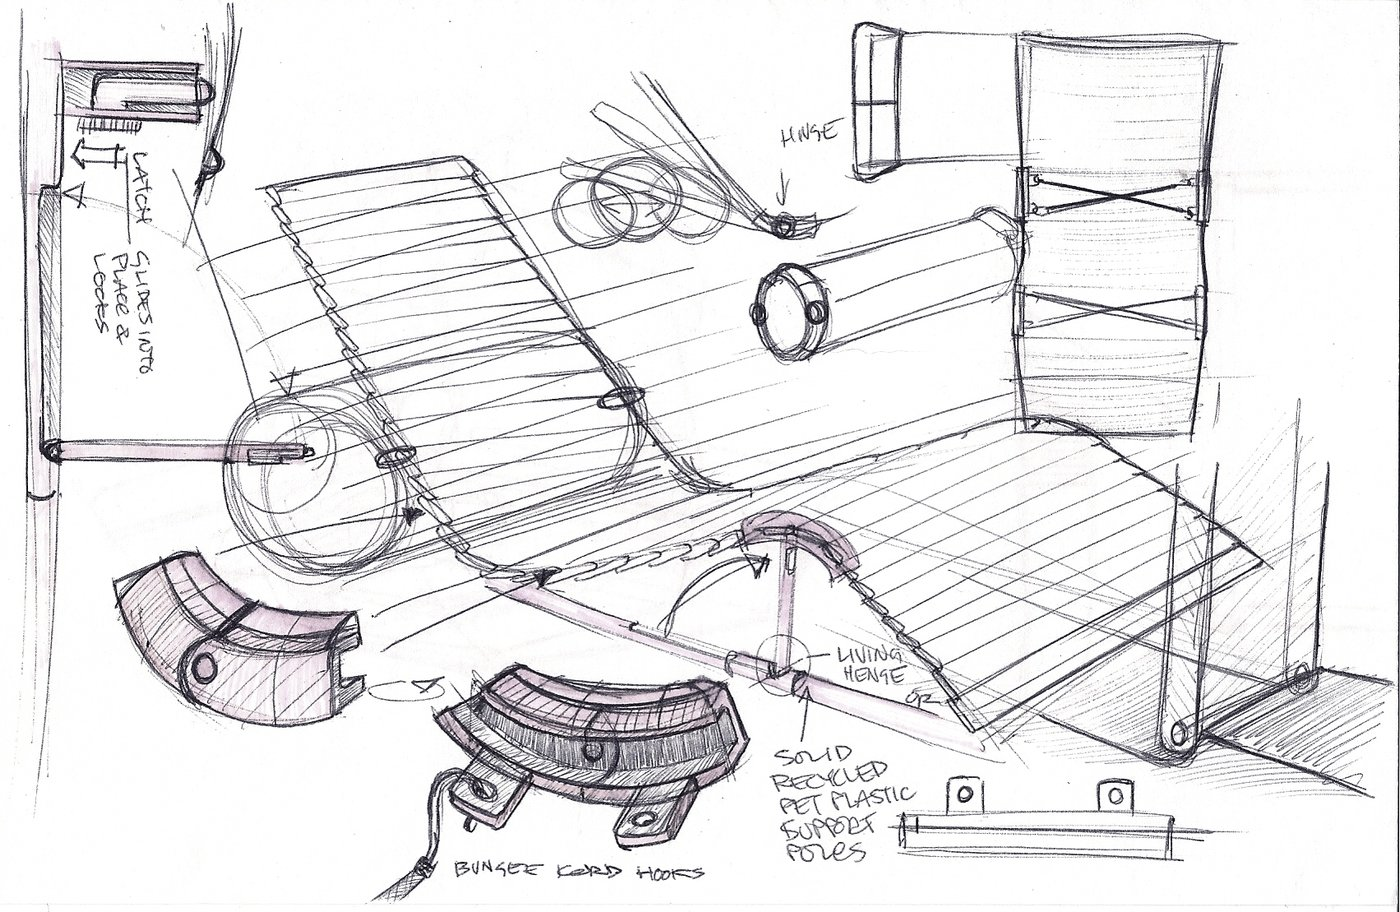 Furniture Sketches by Alton Janelle IV at Coroflot.com